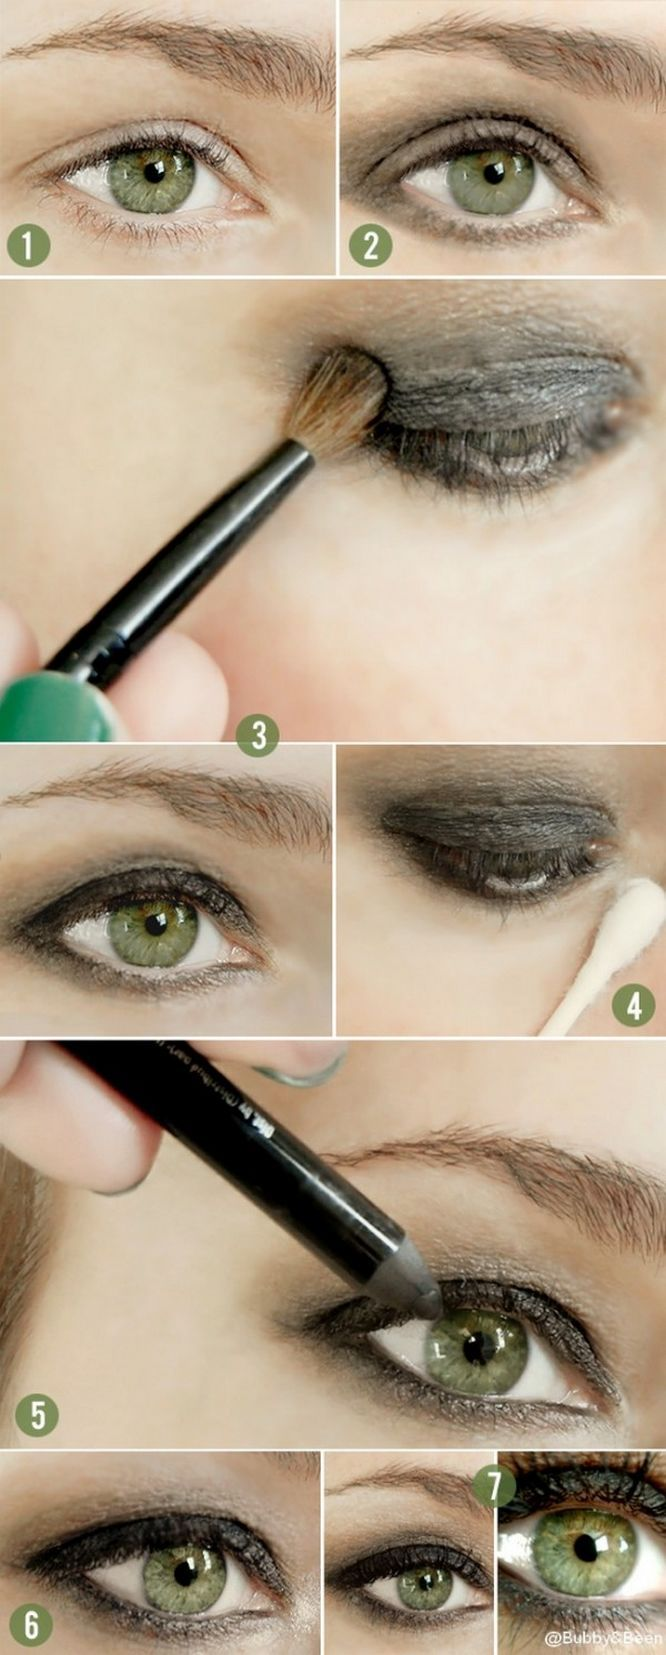 62 best eyes images on pinterest | makeup tips, makeup and beauty